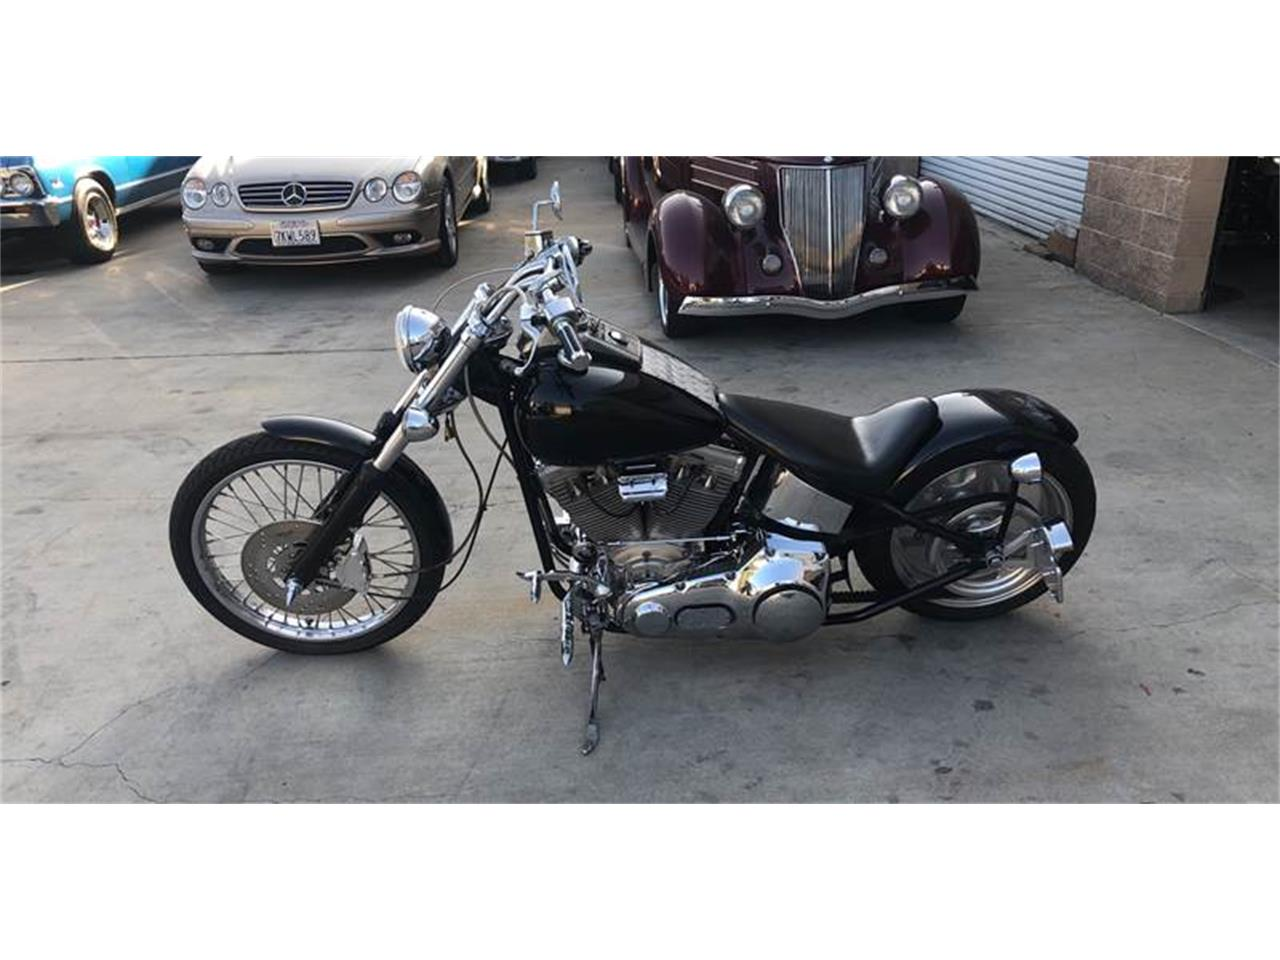 2002 Harley-Davidson Motorcycle for sale in Brea, CA – photo 3